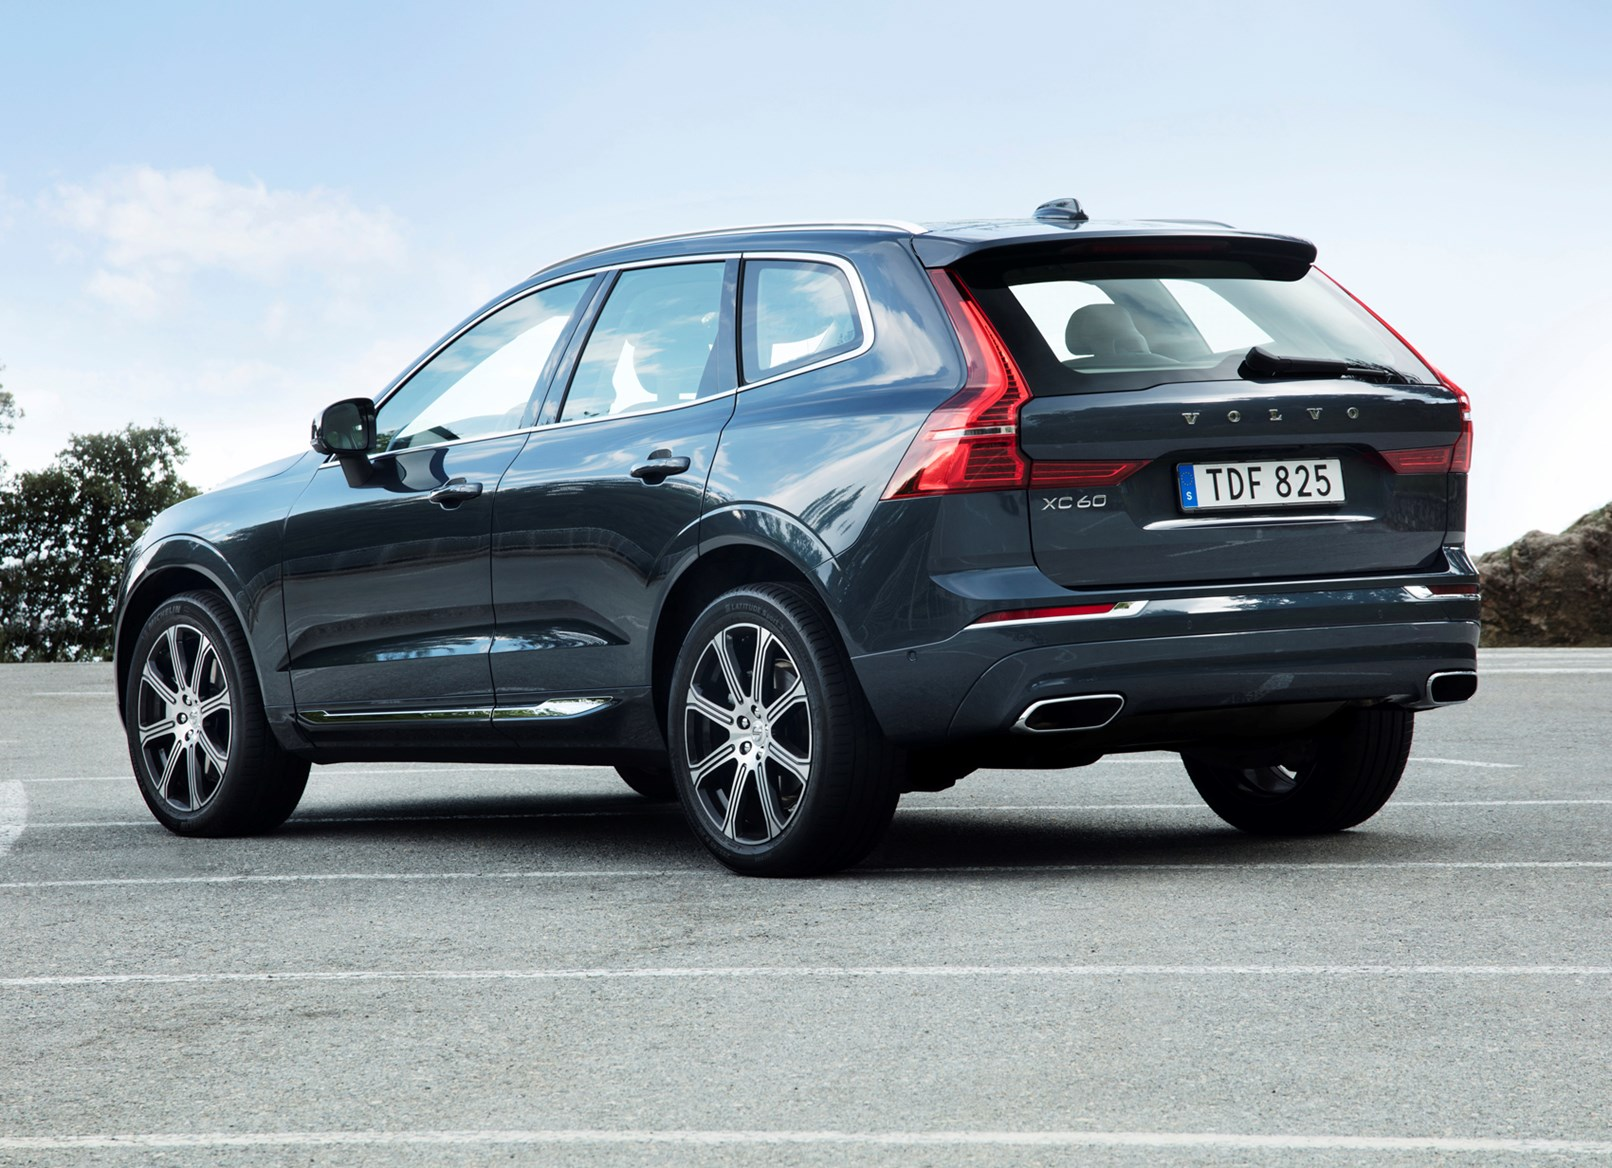 volvo xc60 suv features parkers. Black Bedroom Furniture Sets. Home Design Ideas